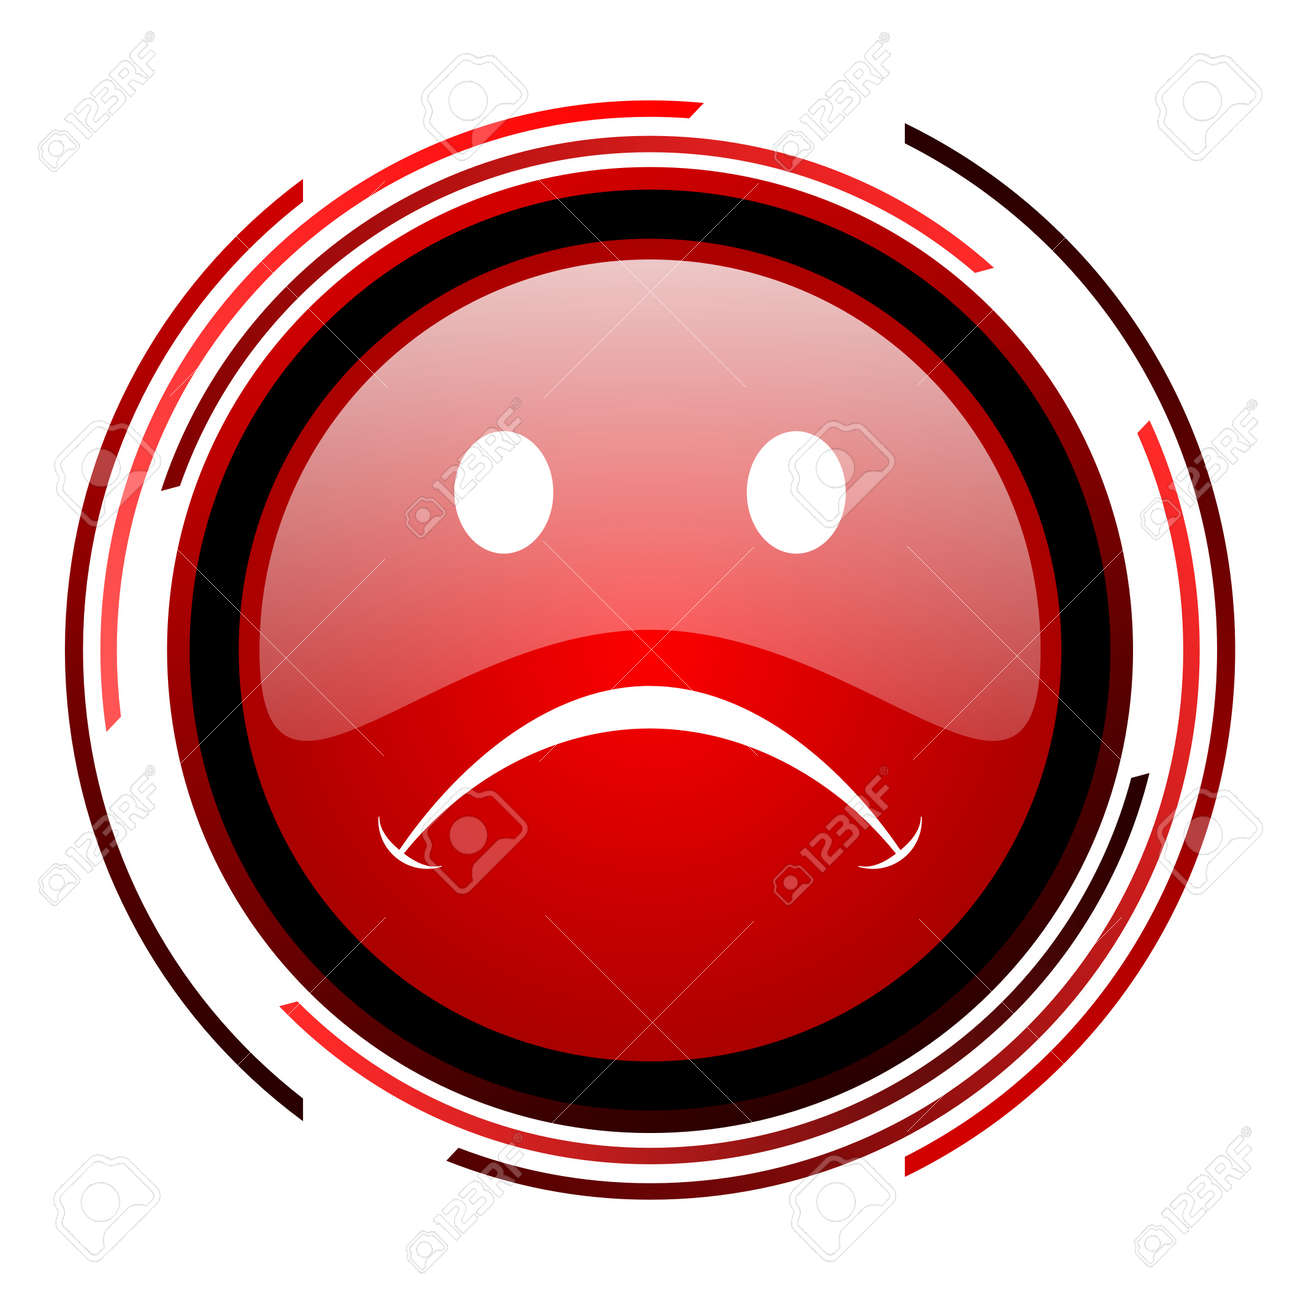 cry red circle web glossy icon on white background Stock Photo - 19640715